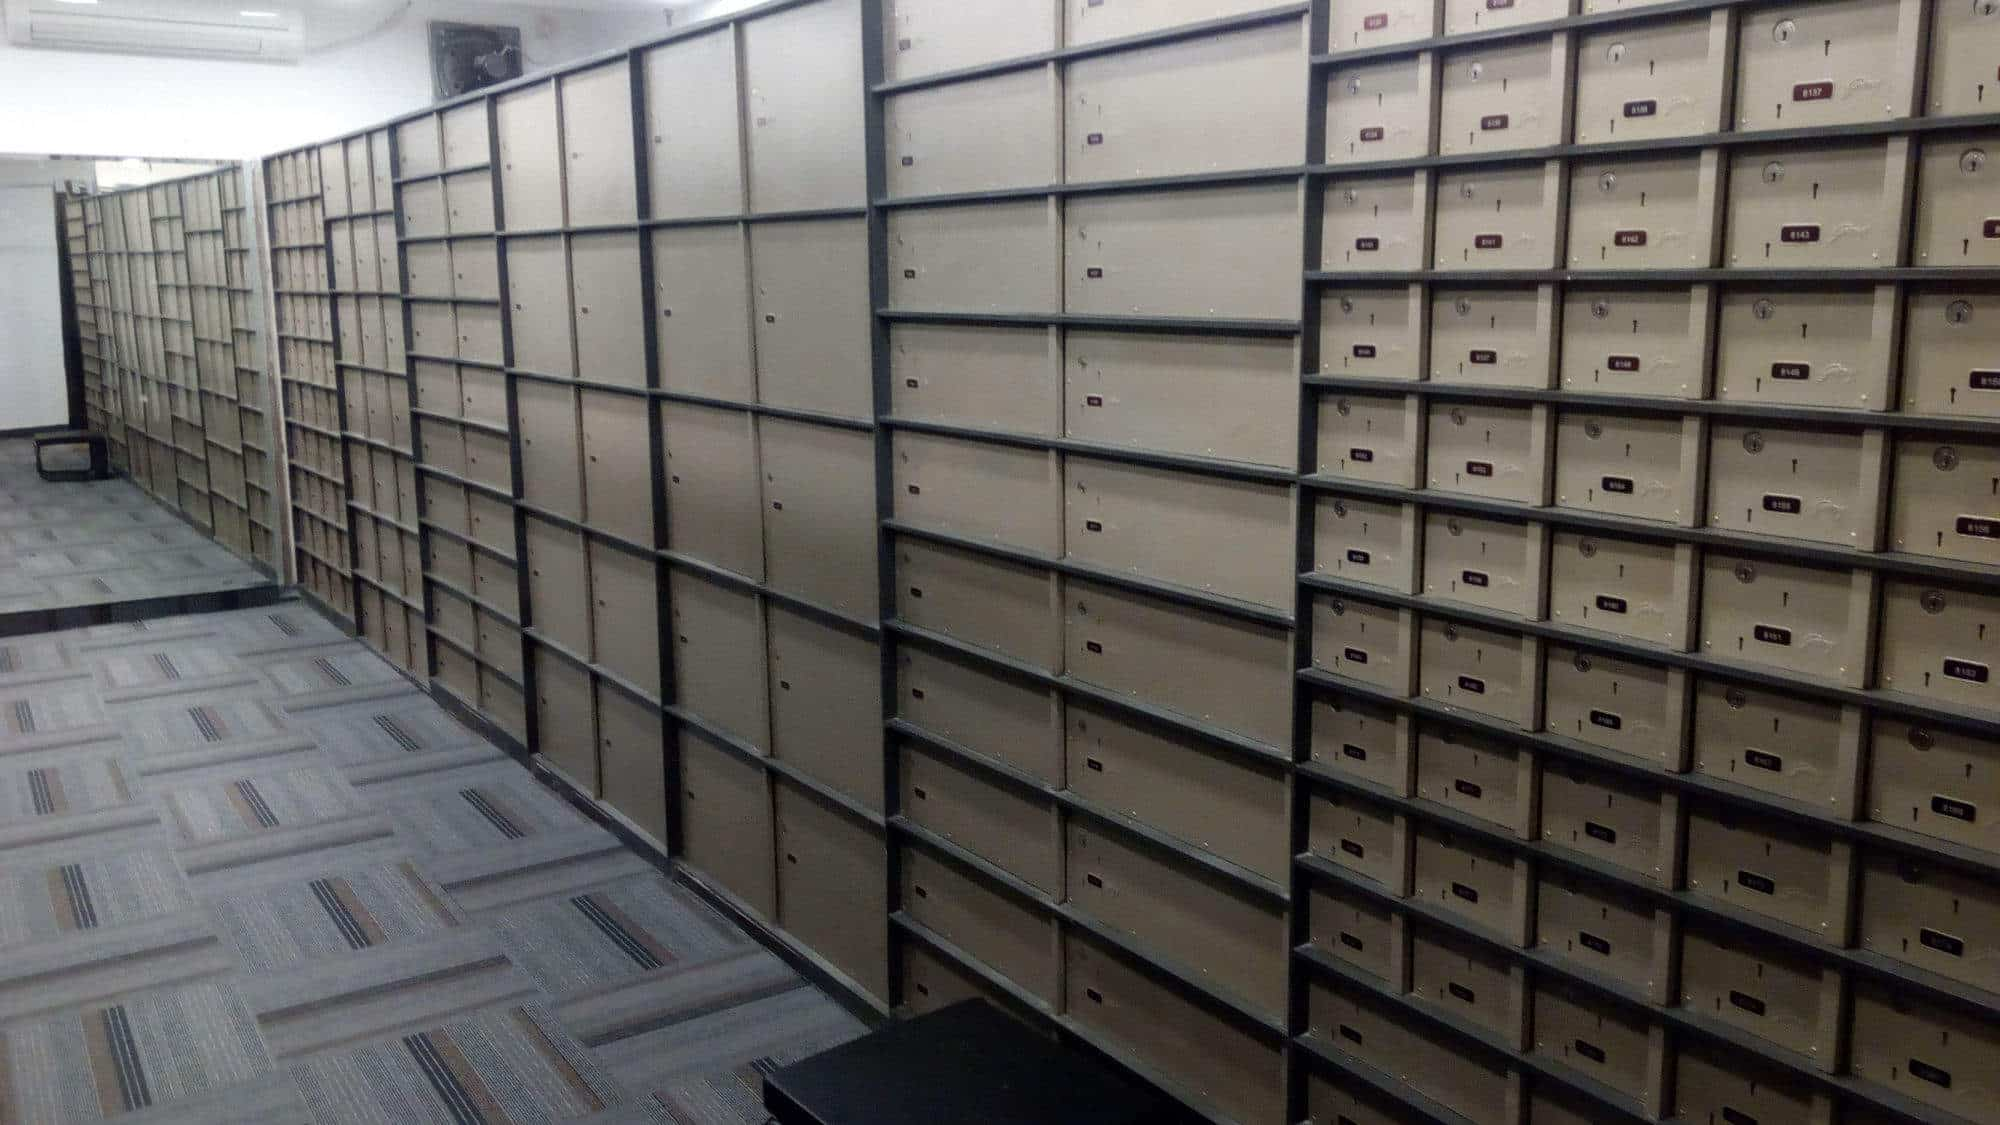 SC directs RBI to lay down regulations for locker facility management